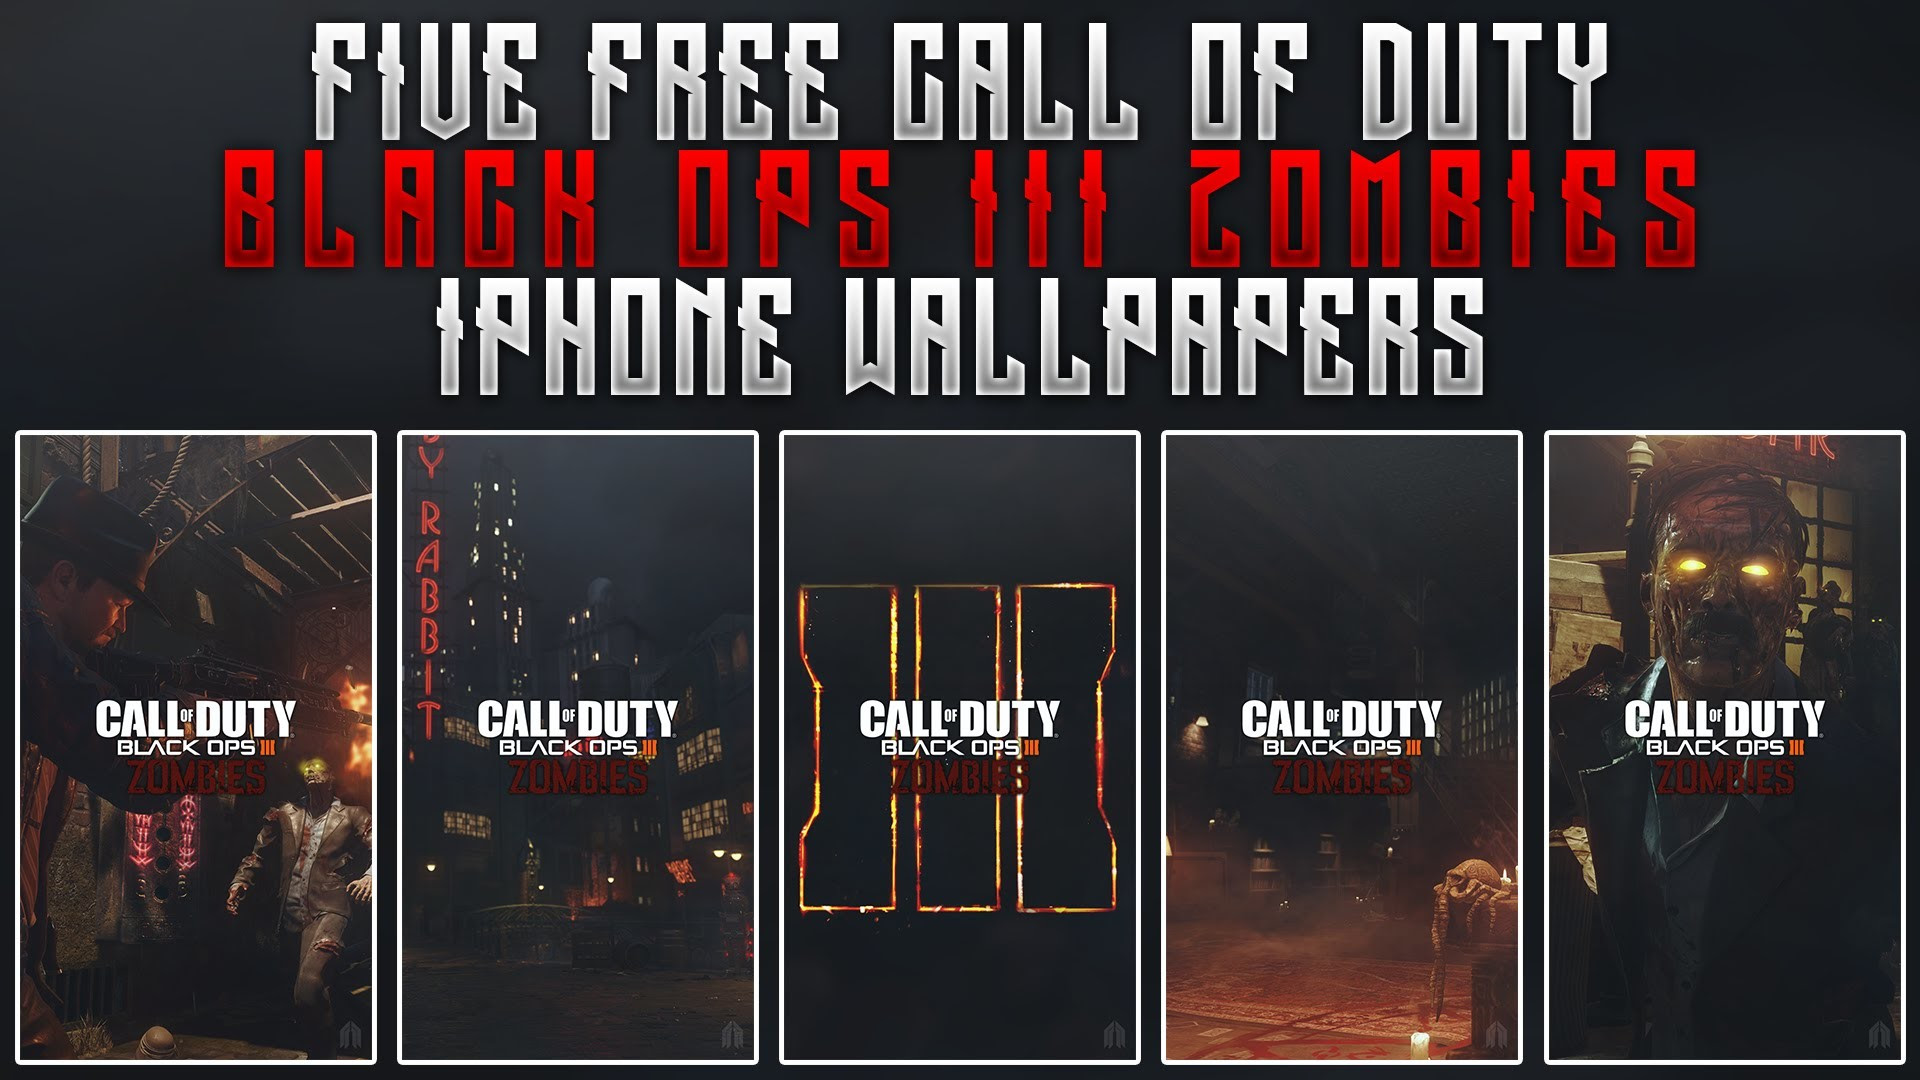 Download Call Of Duty Wallpaper Perks